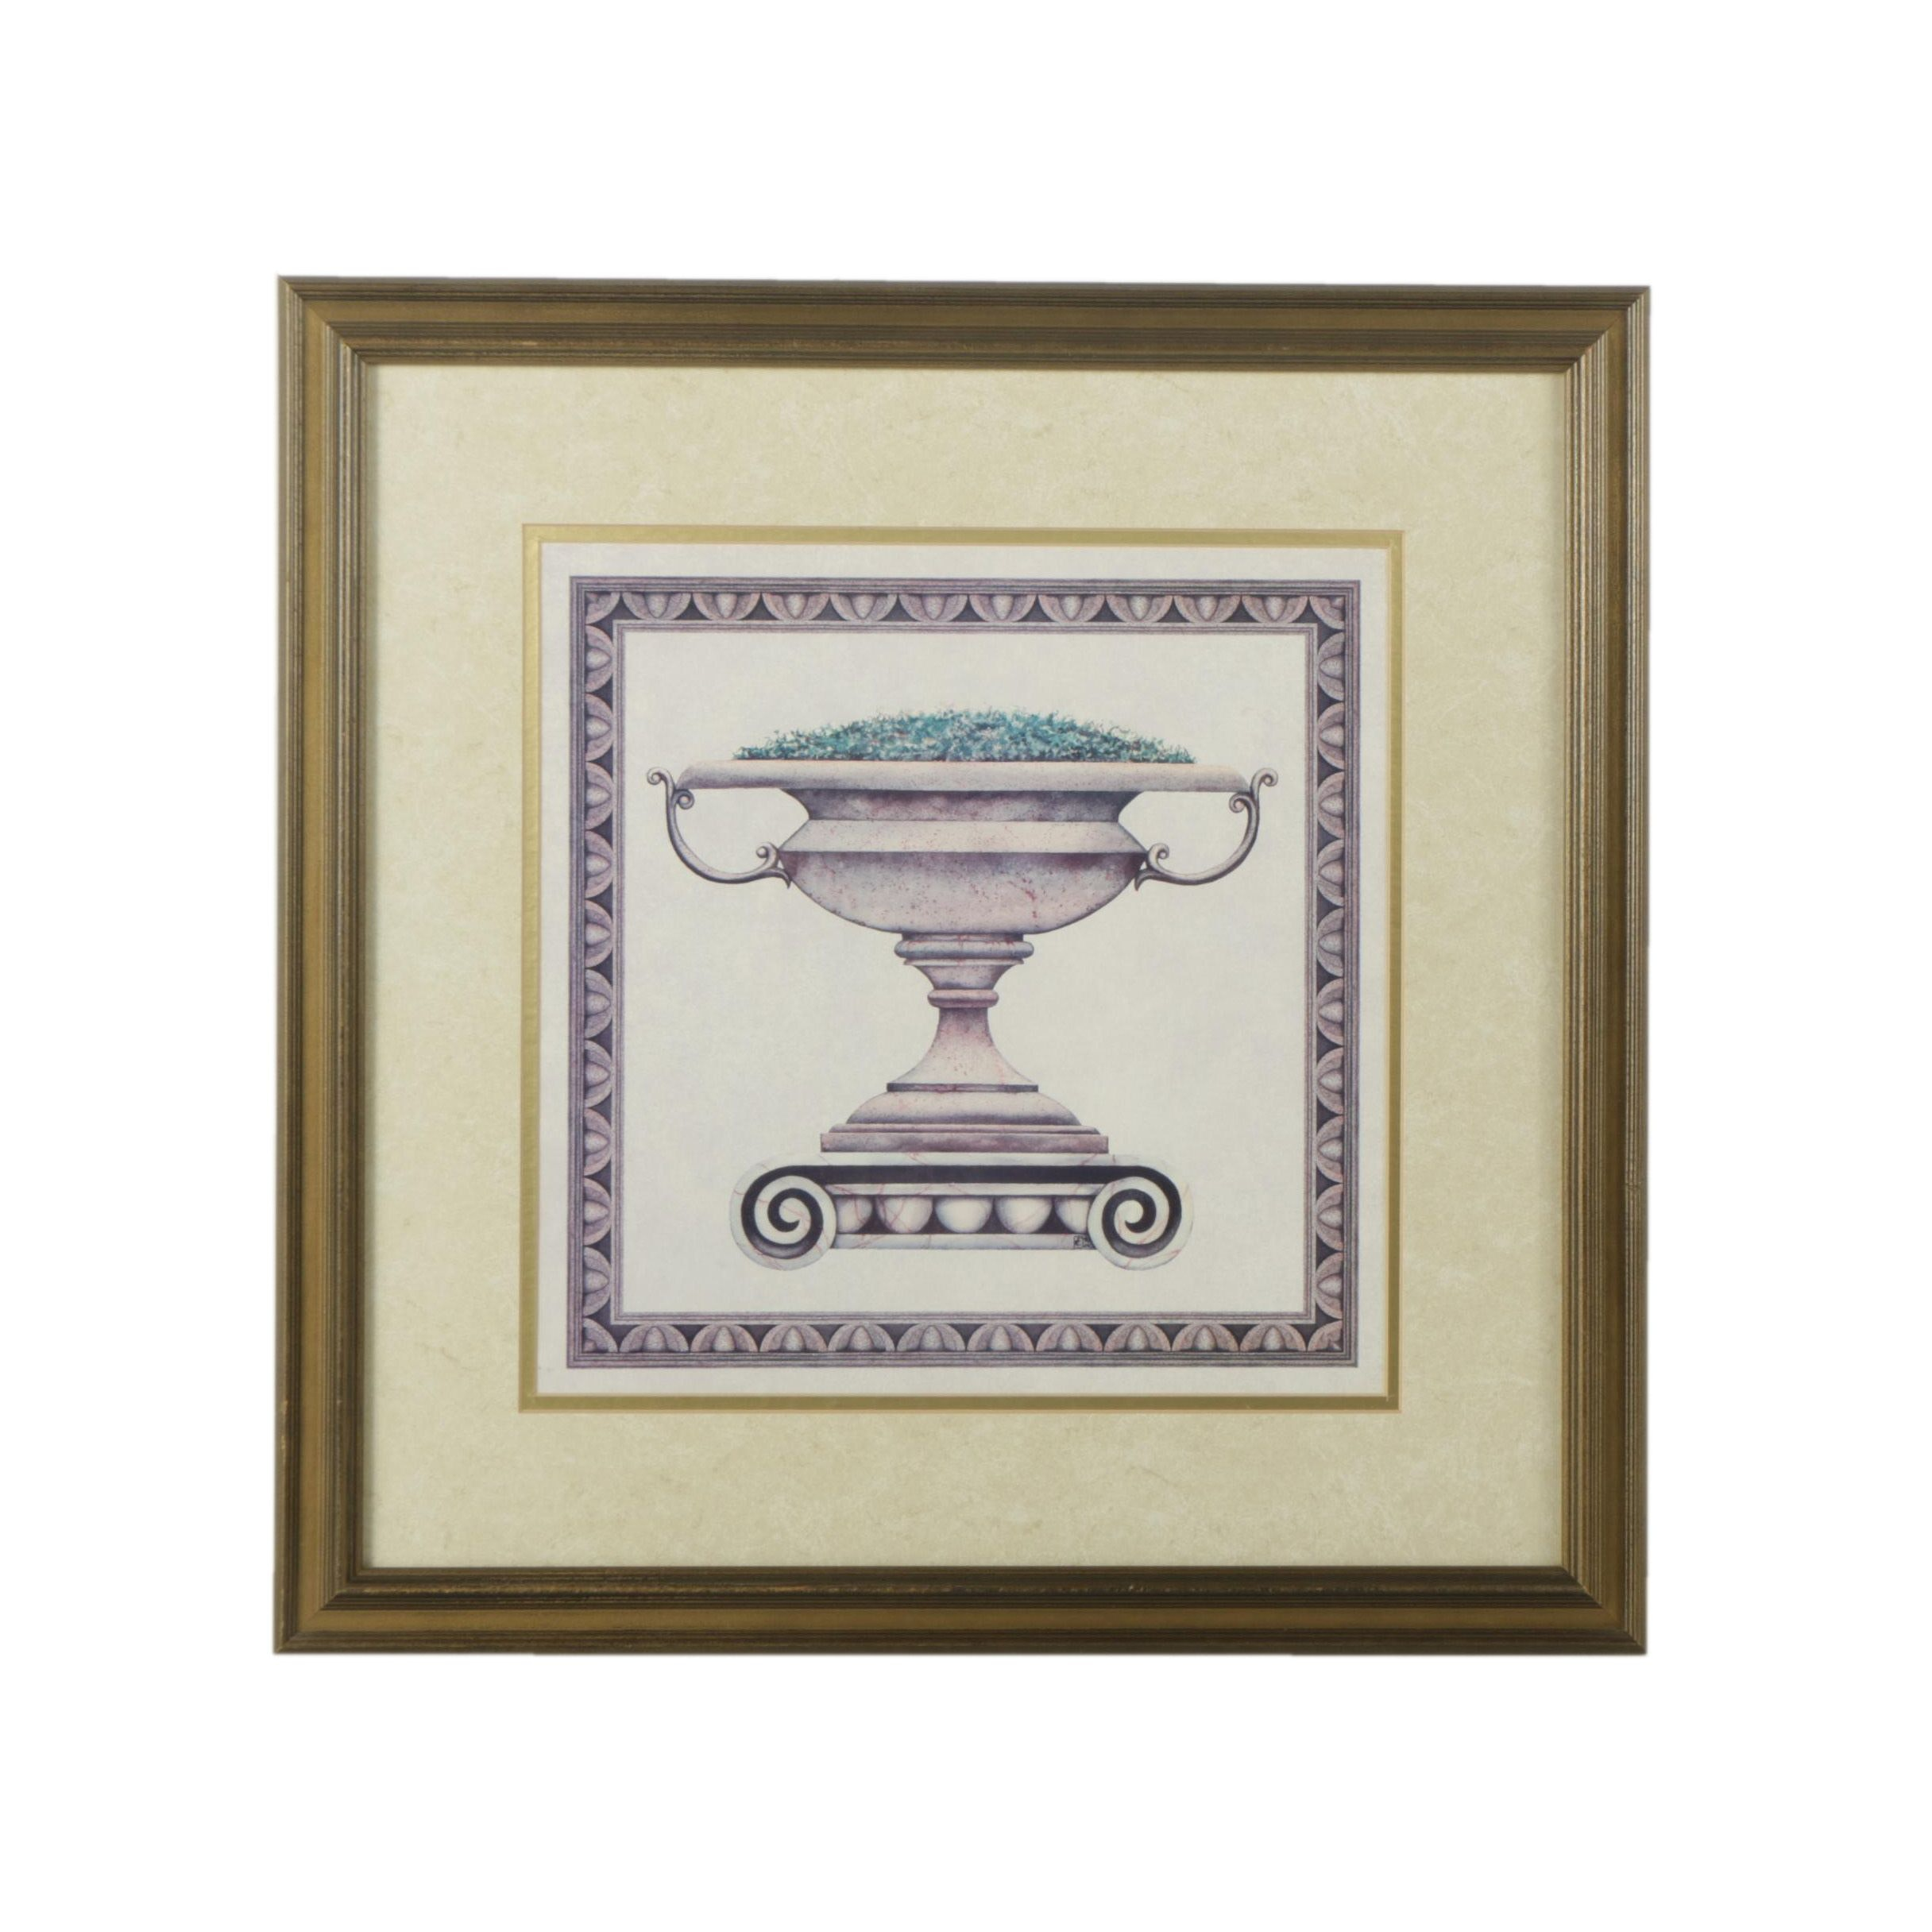 Offset Lithograph Print on Paper of Planter